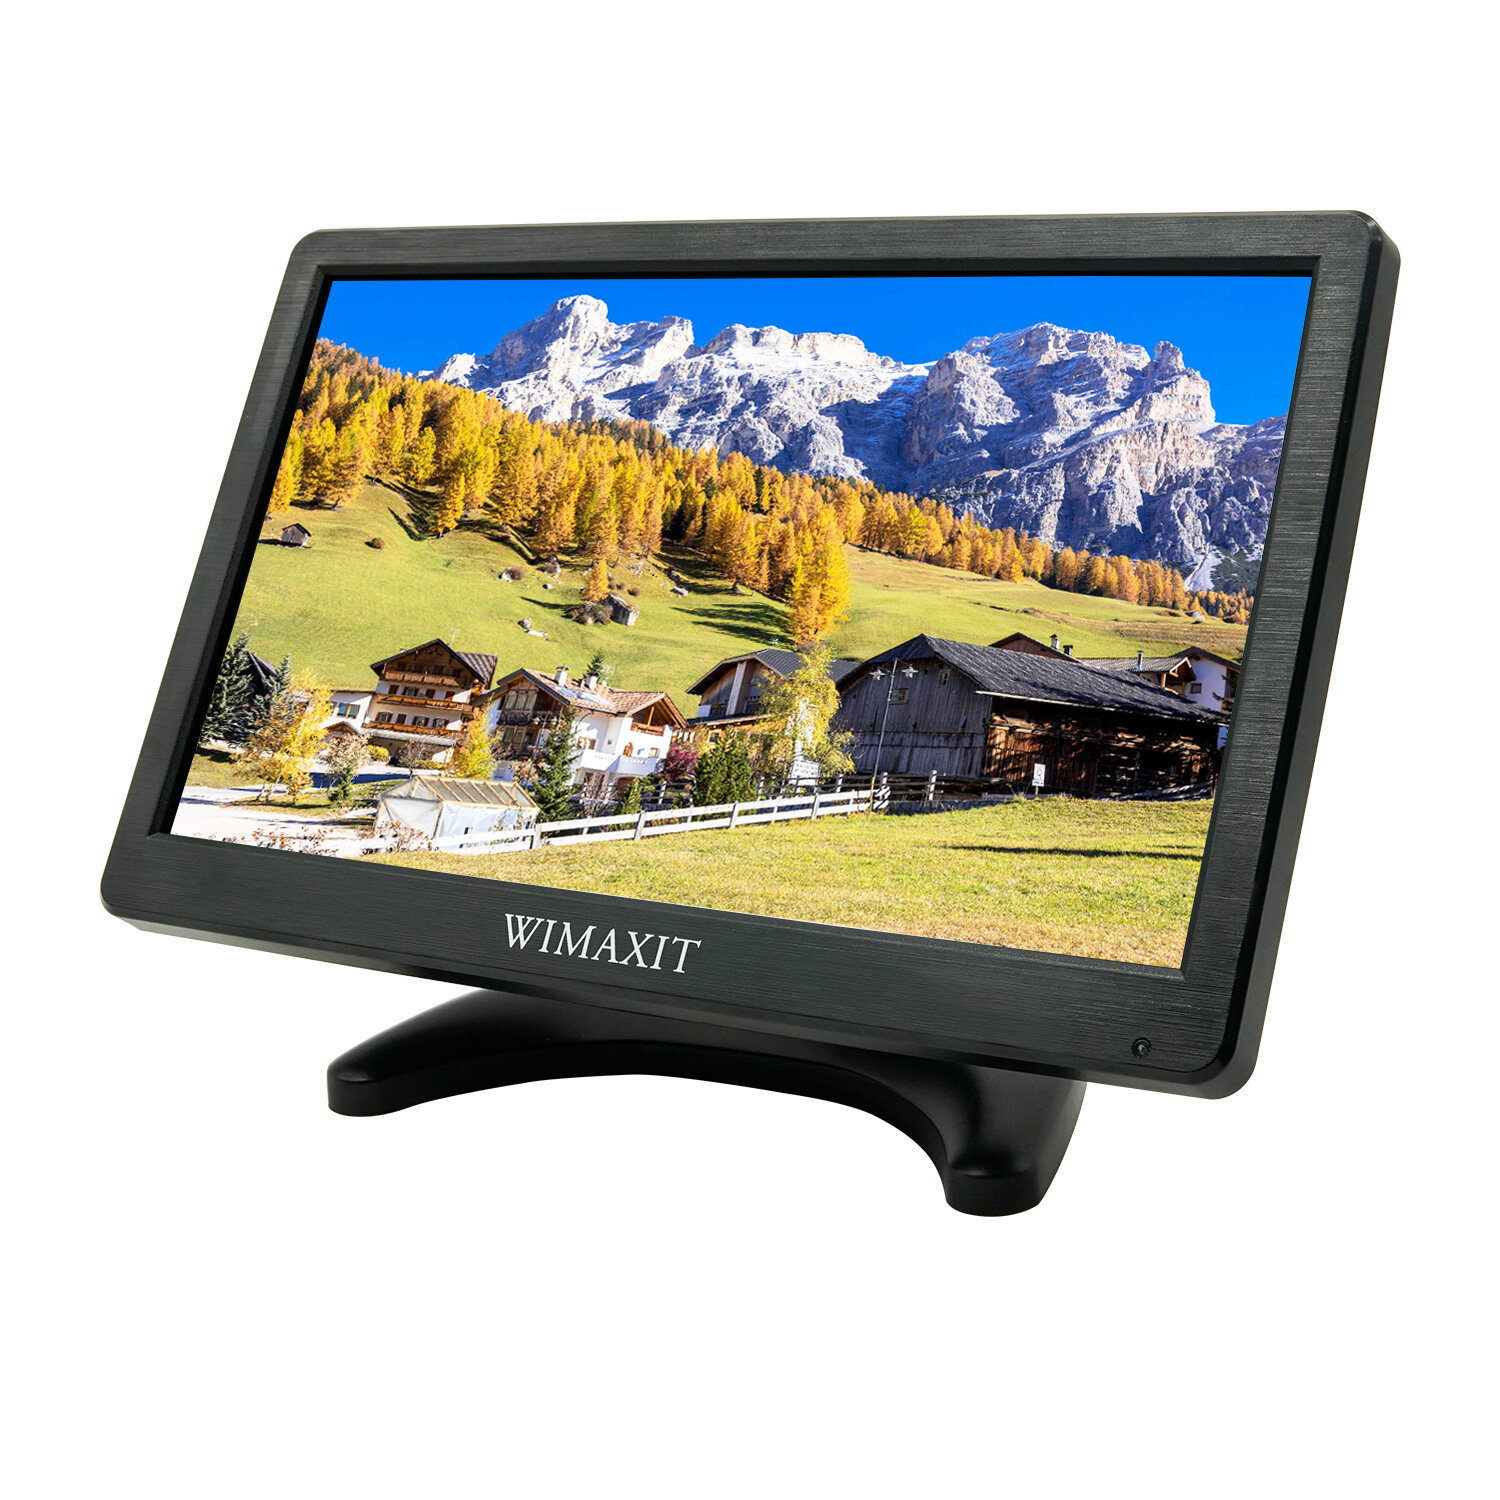 WIMAXIT 12 Inch Portable Monitor HD 1920x1080 IPS LCD HDMI